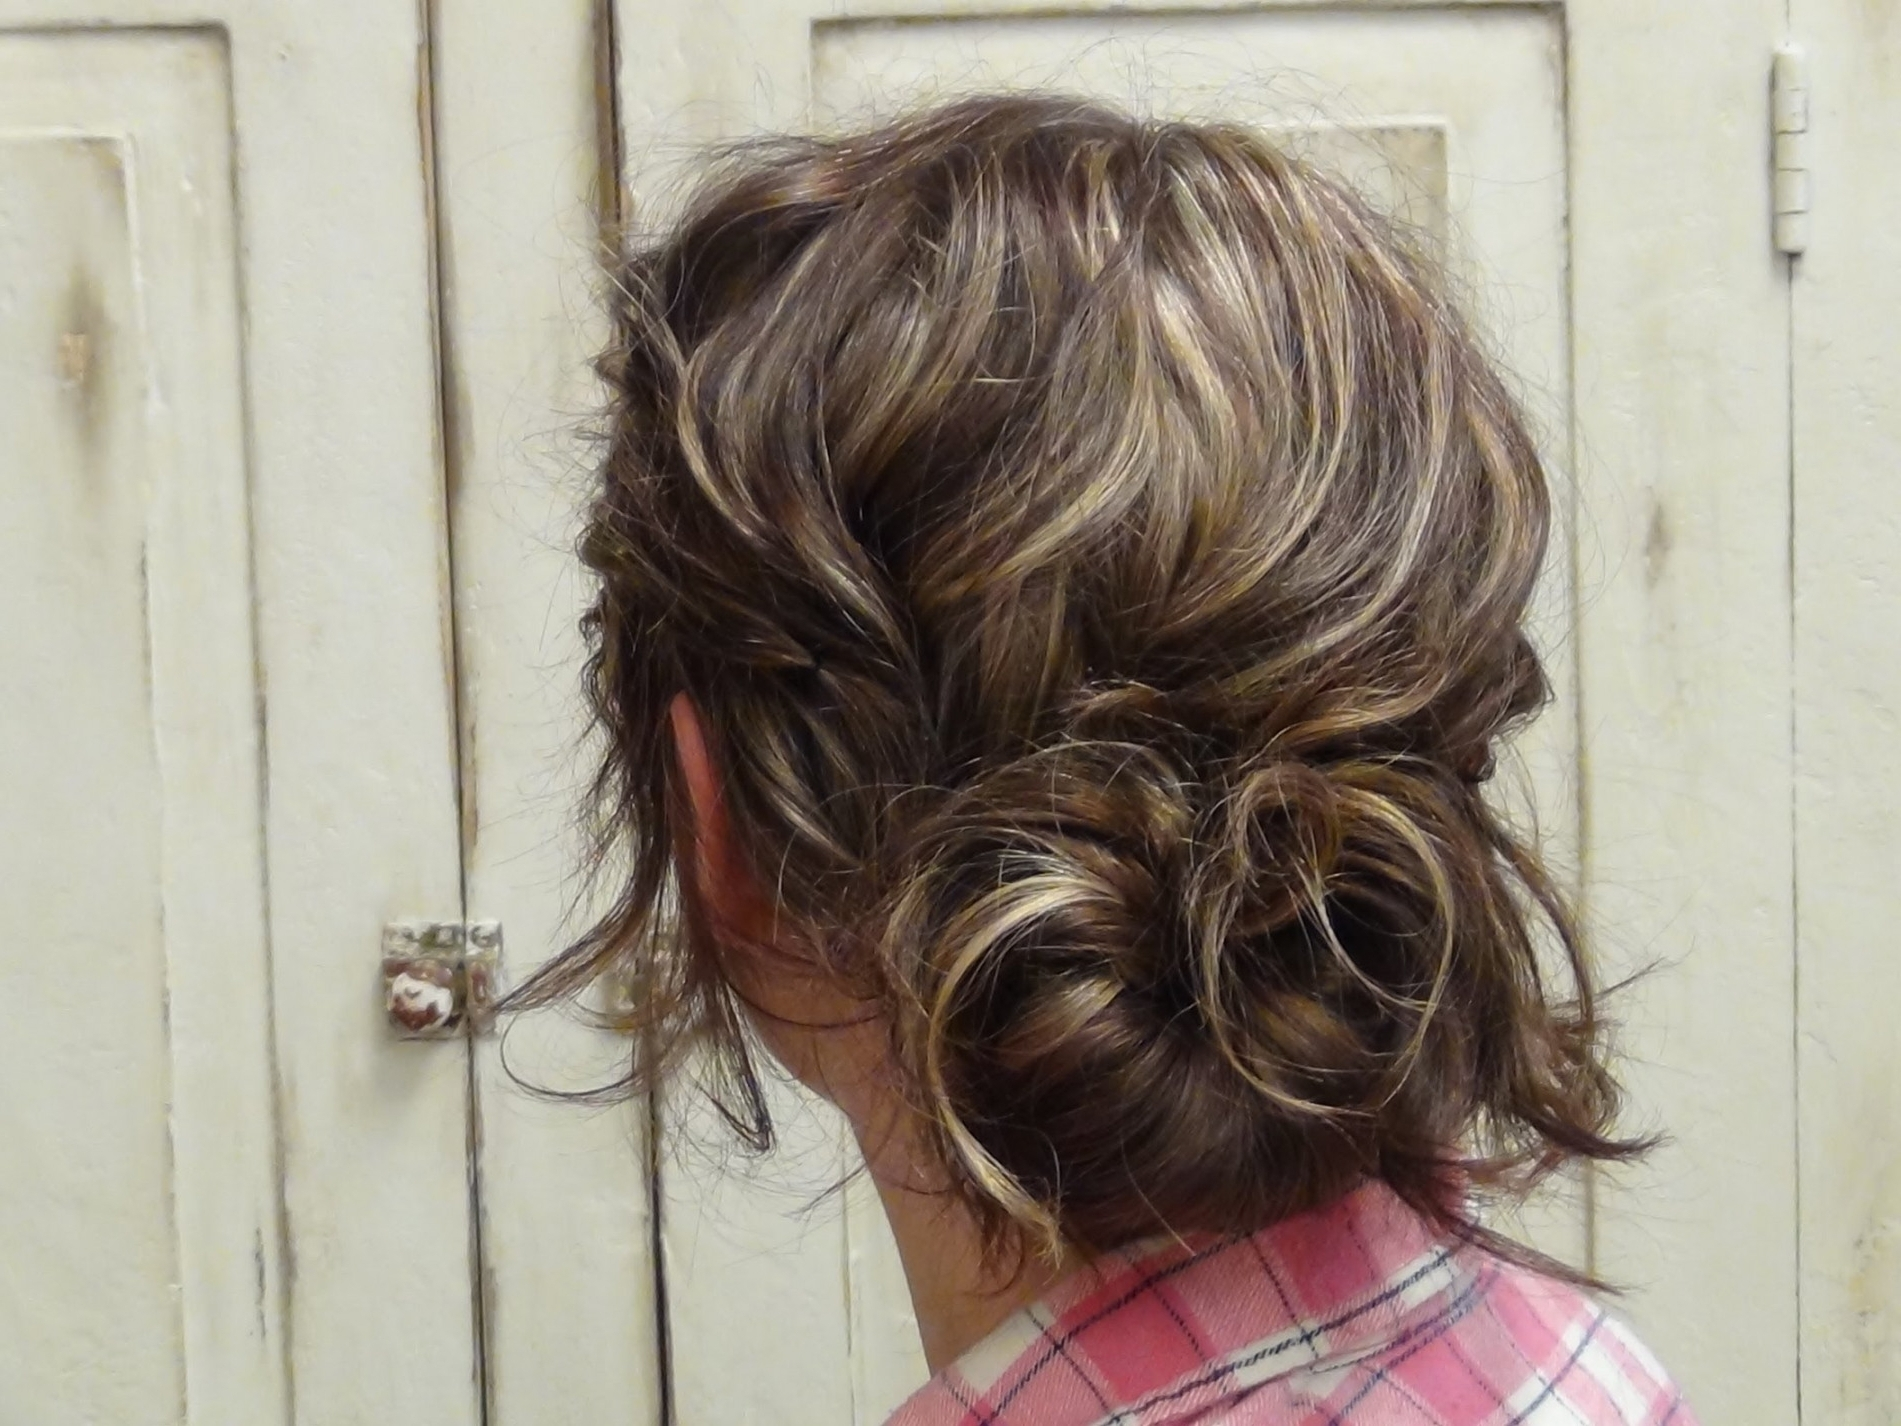 How To Style Cute Low Messy Bun Updo Hairstyles – Youtube | Latest With Cute Bun Updo Hairstyles (View 9 of 15)